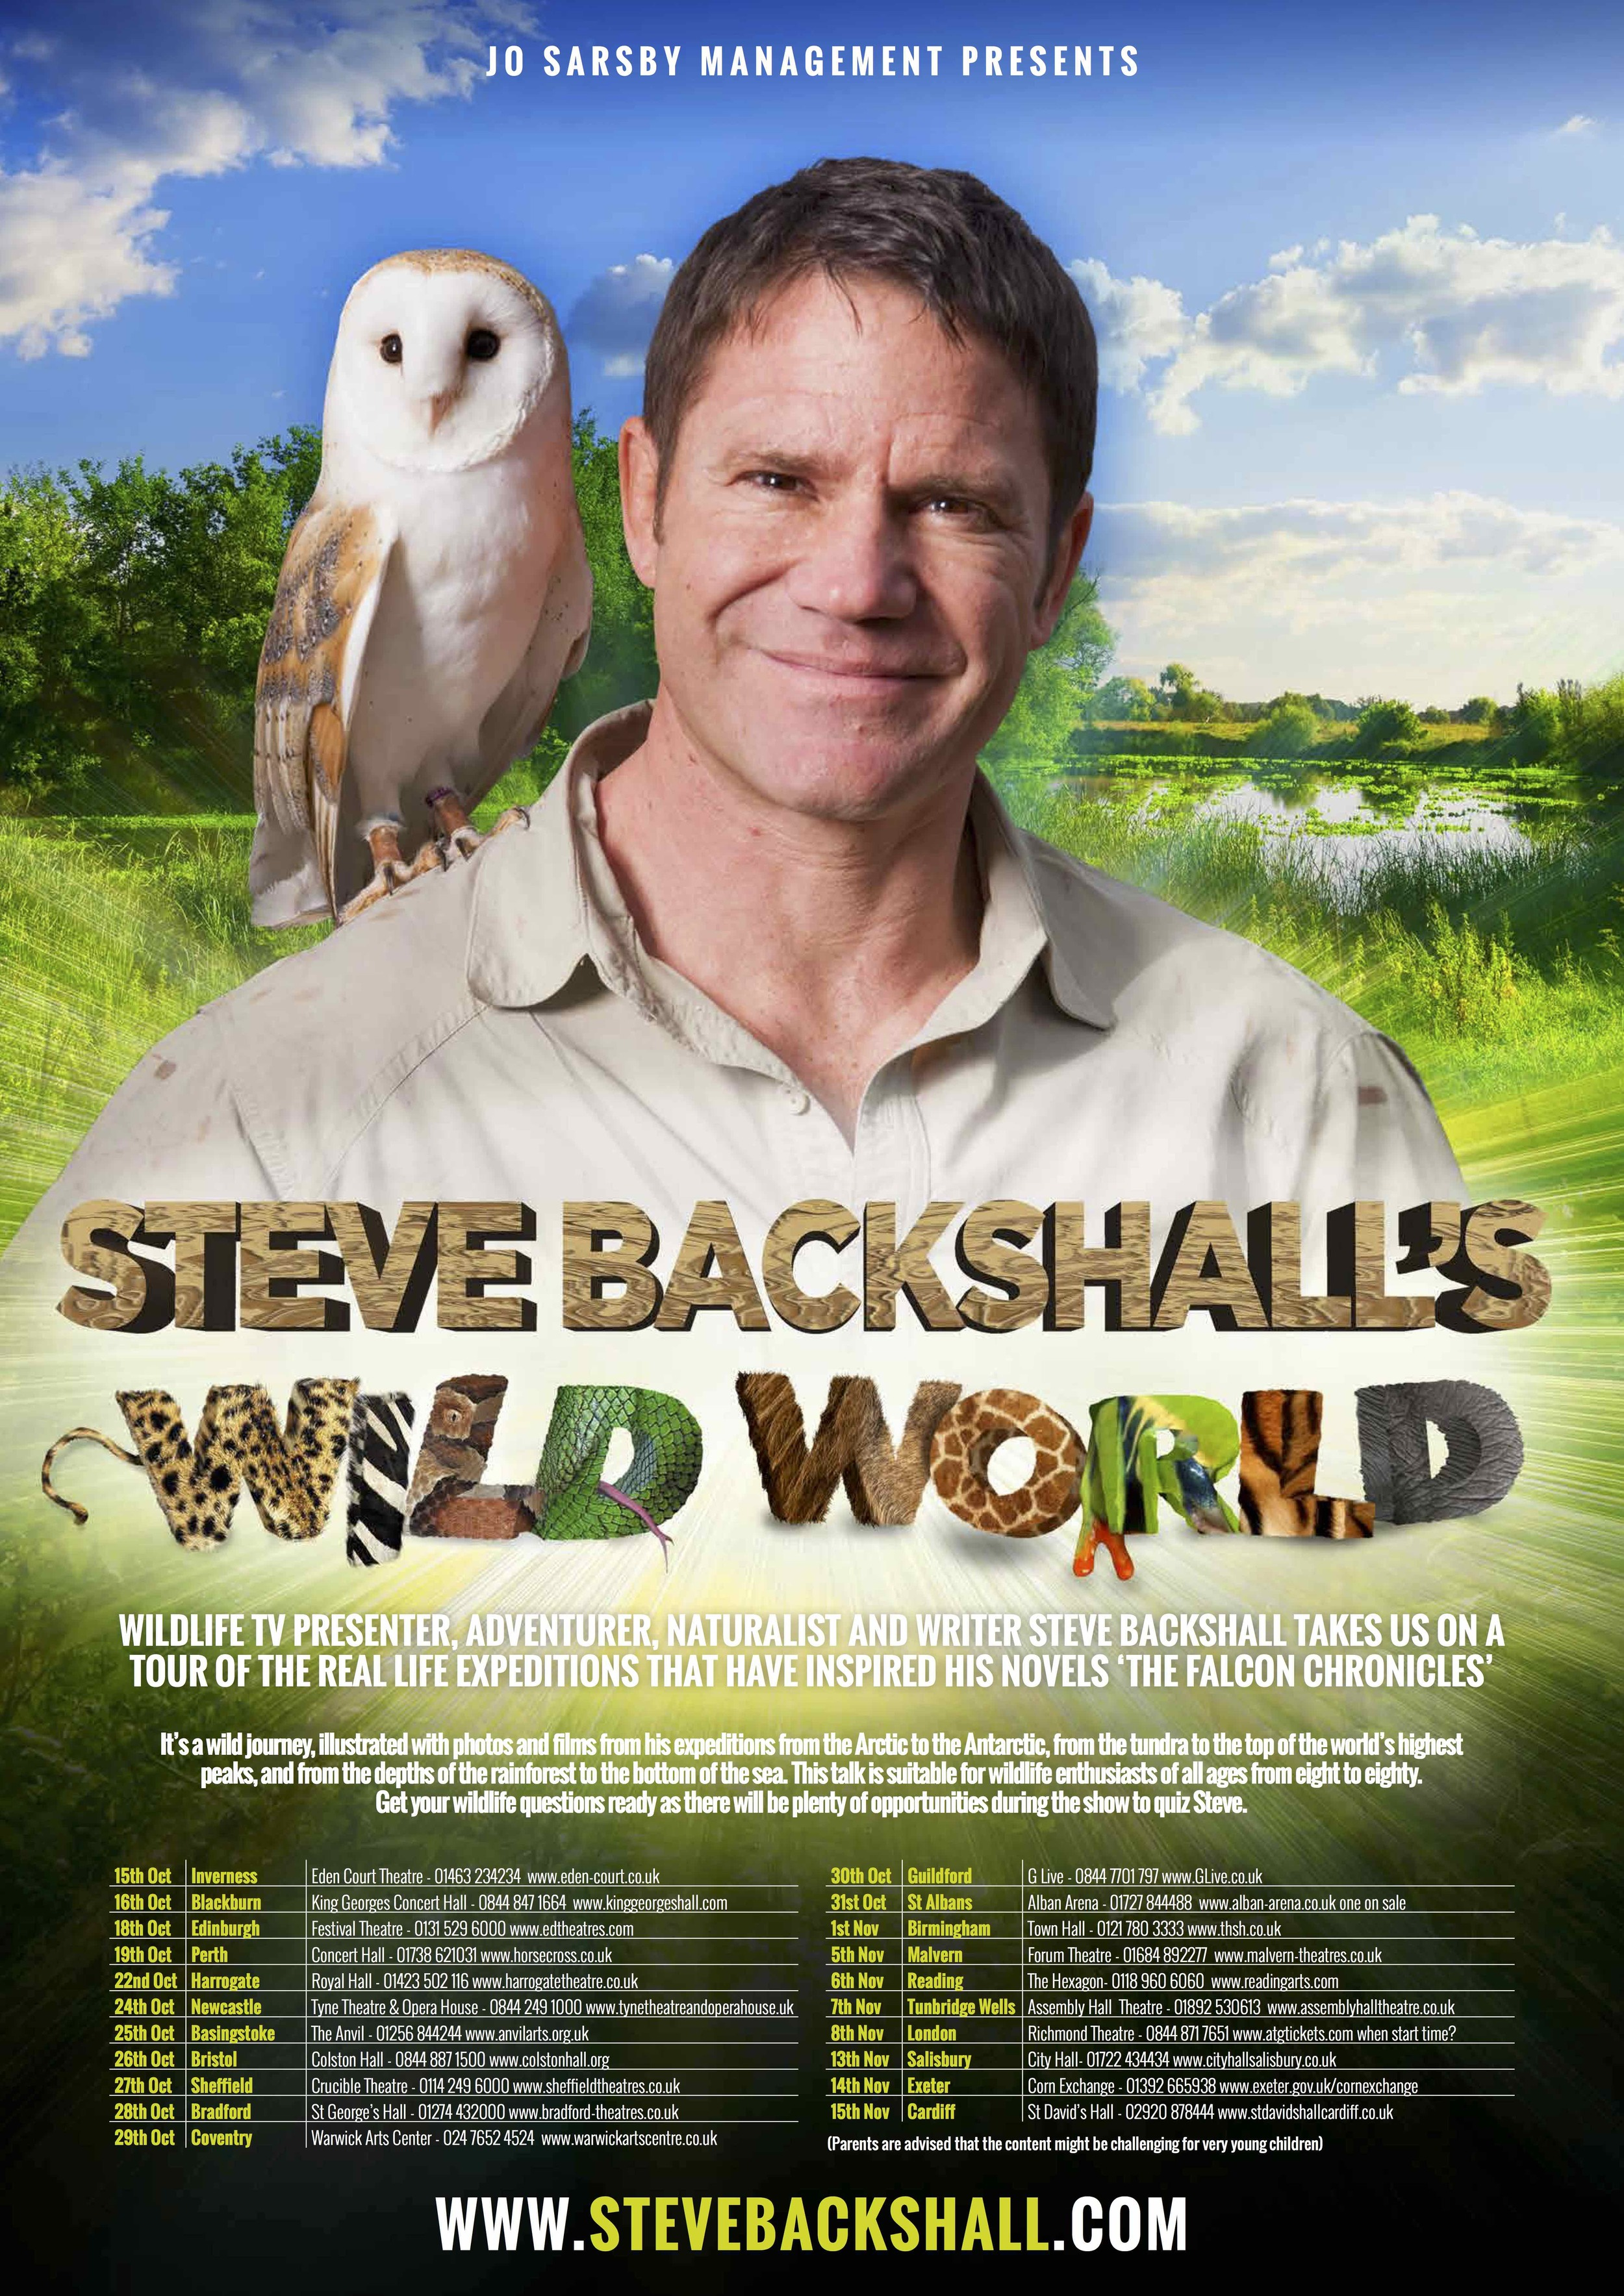 Steve Backshall's Wild World Tour